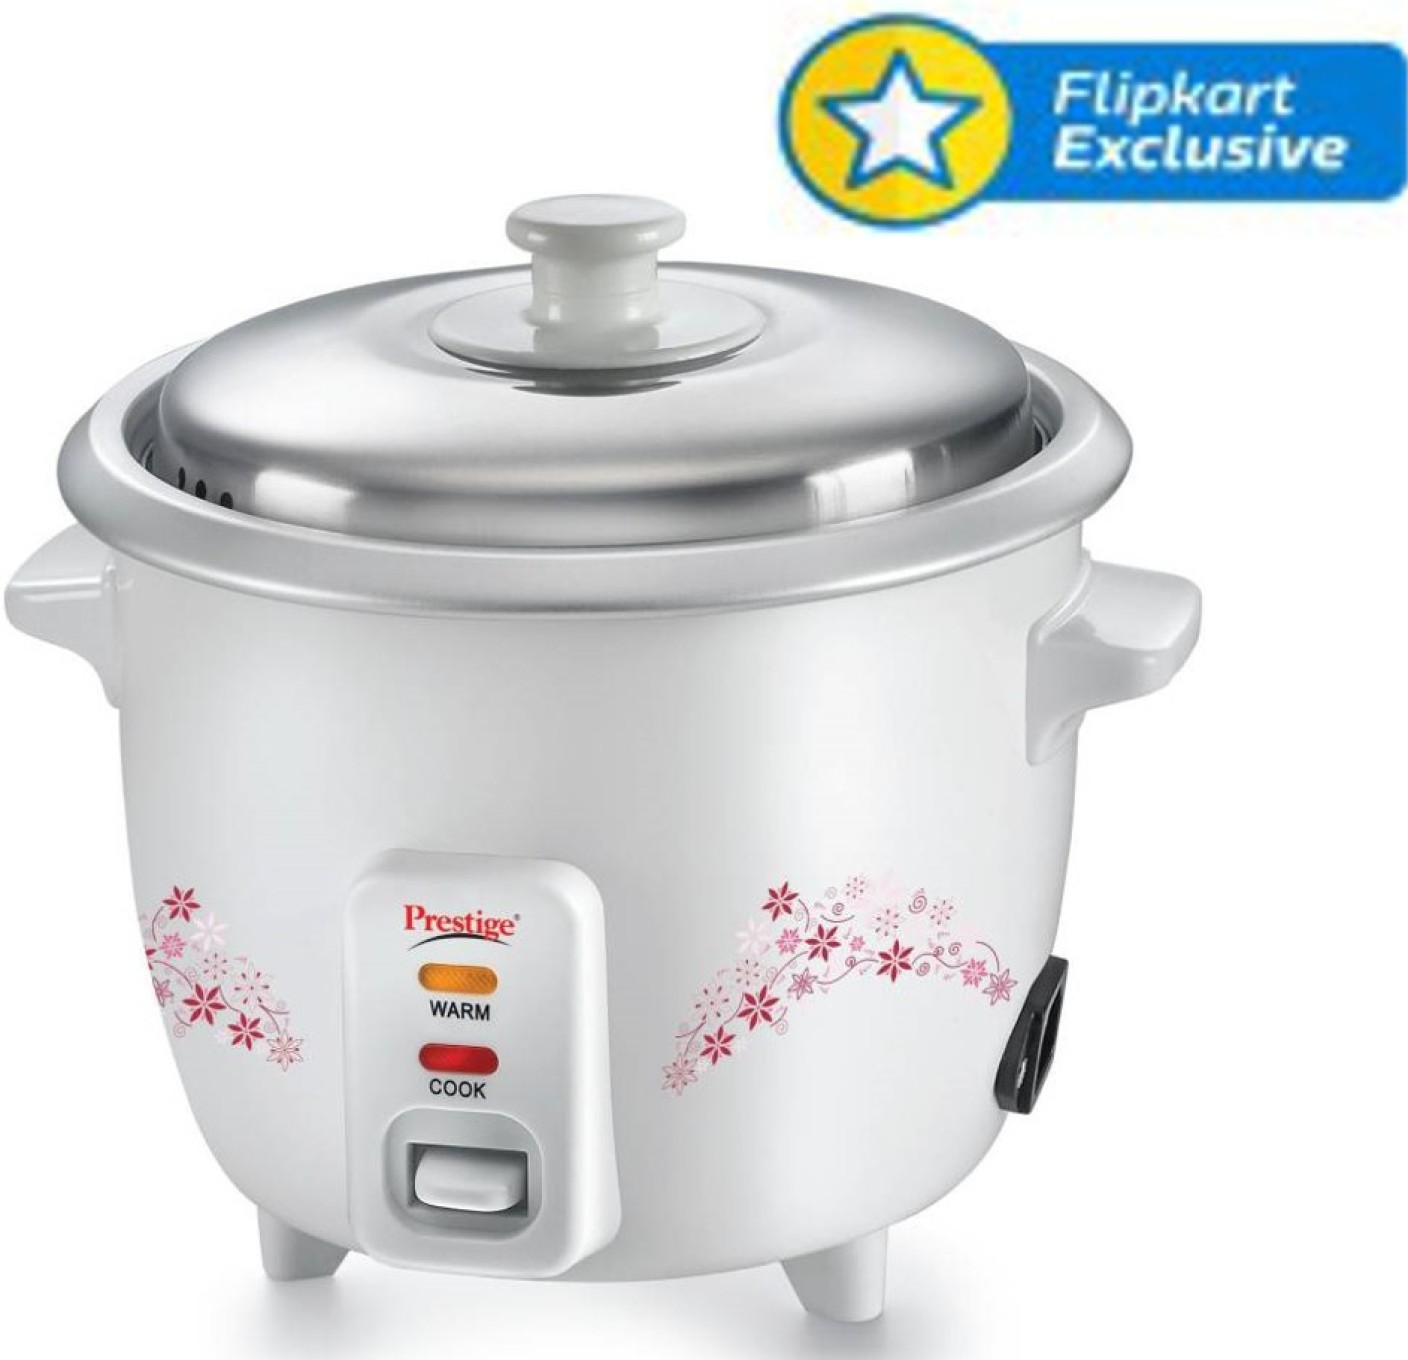 Prestige Delight PRWO - 1.5 Electric Rice Cooker with Steaming ...